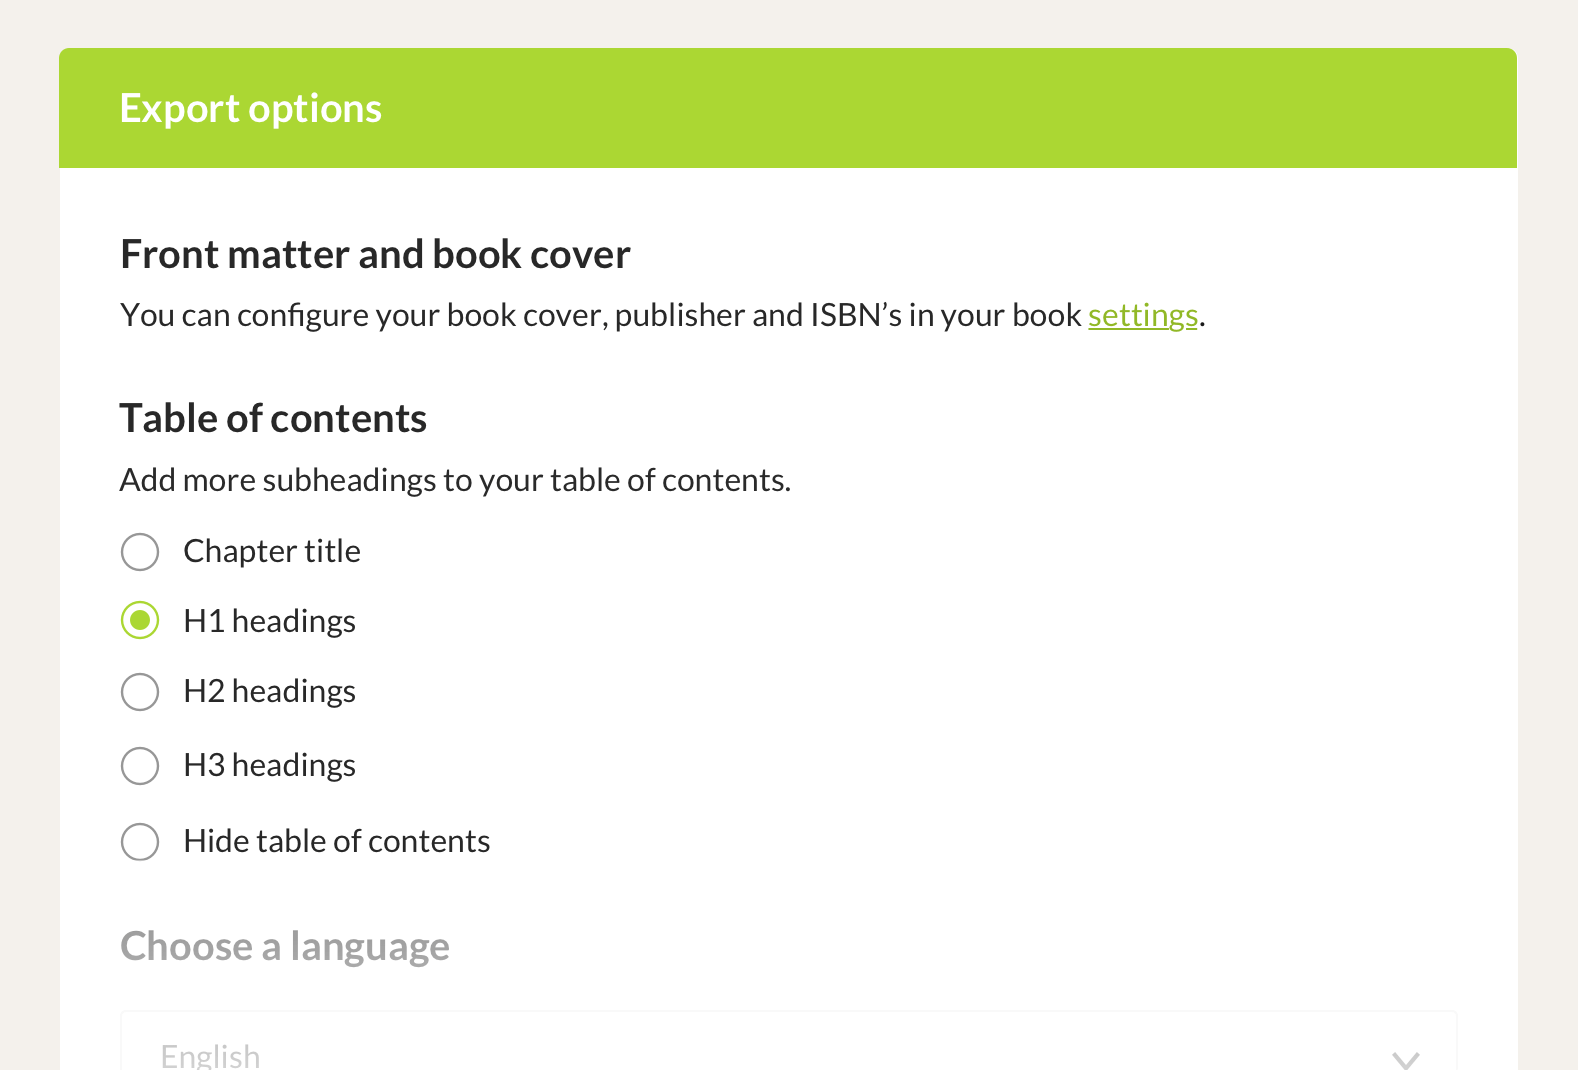 Customize the Table of Contents of your book